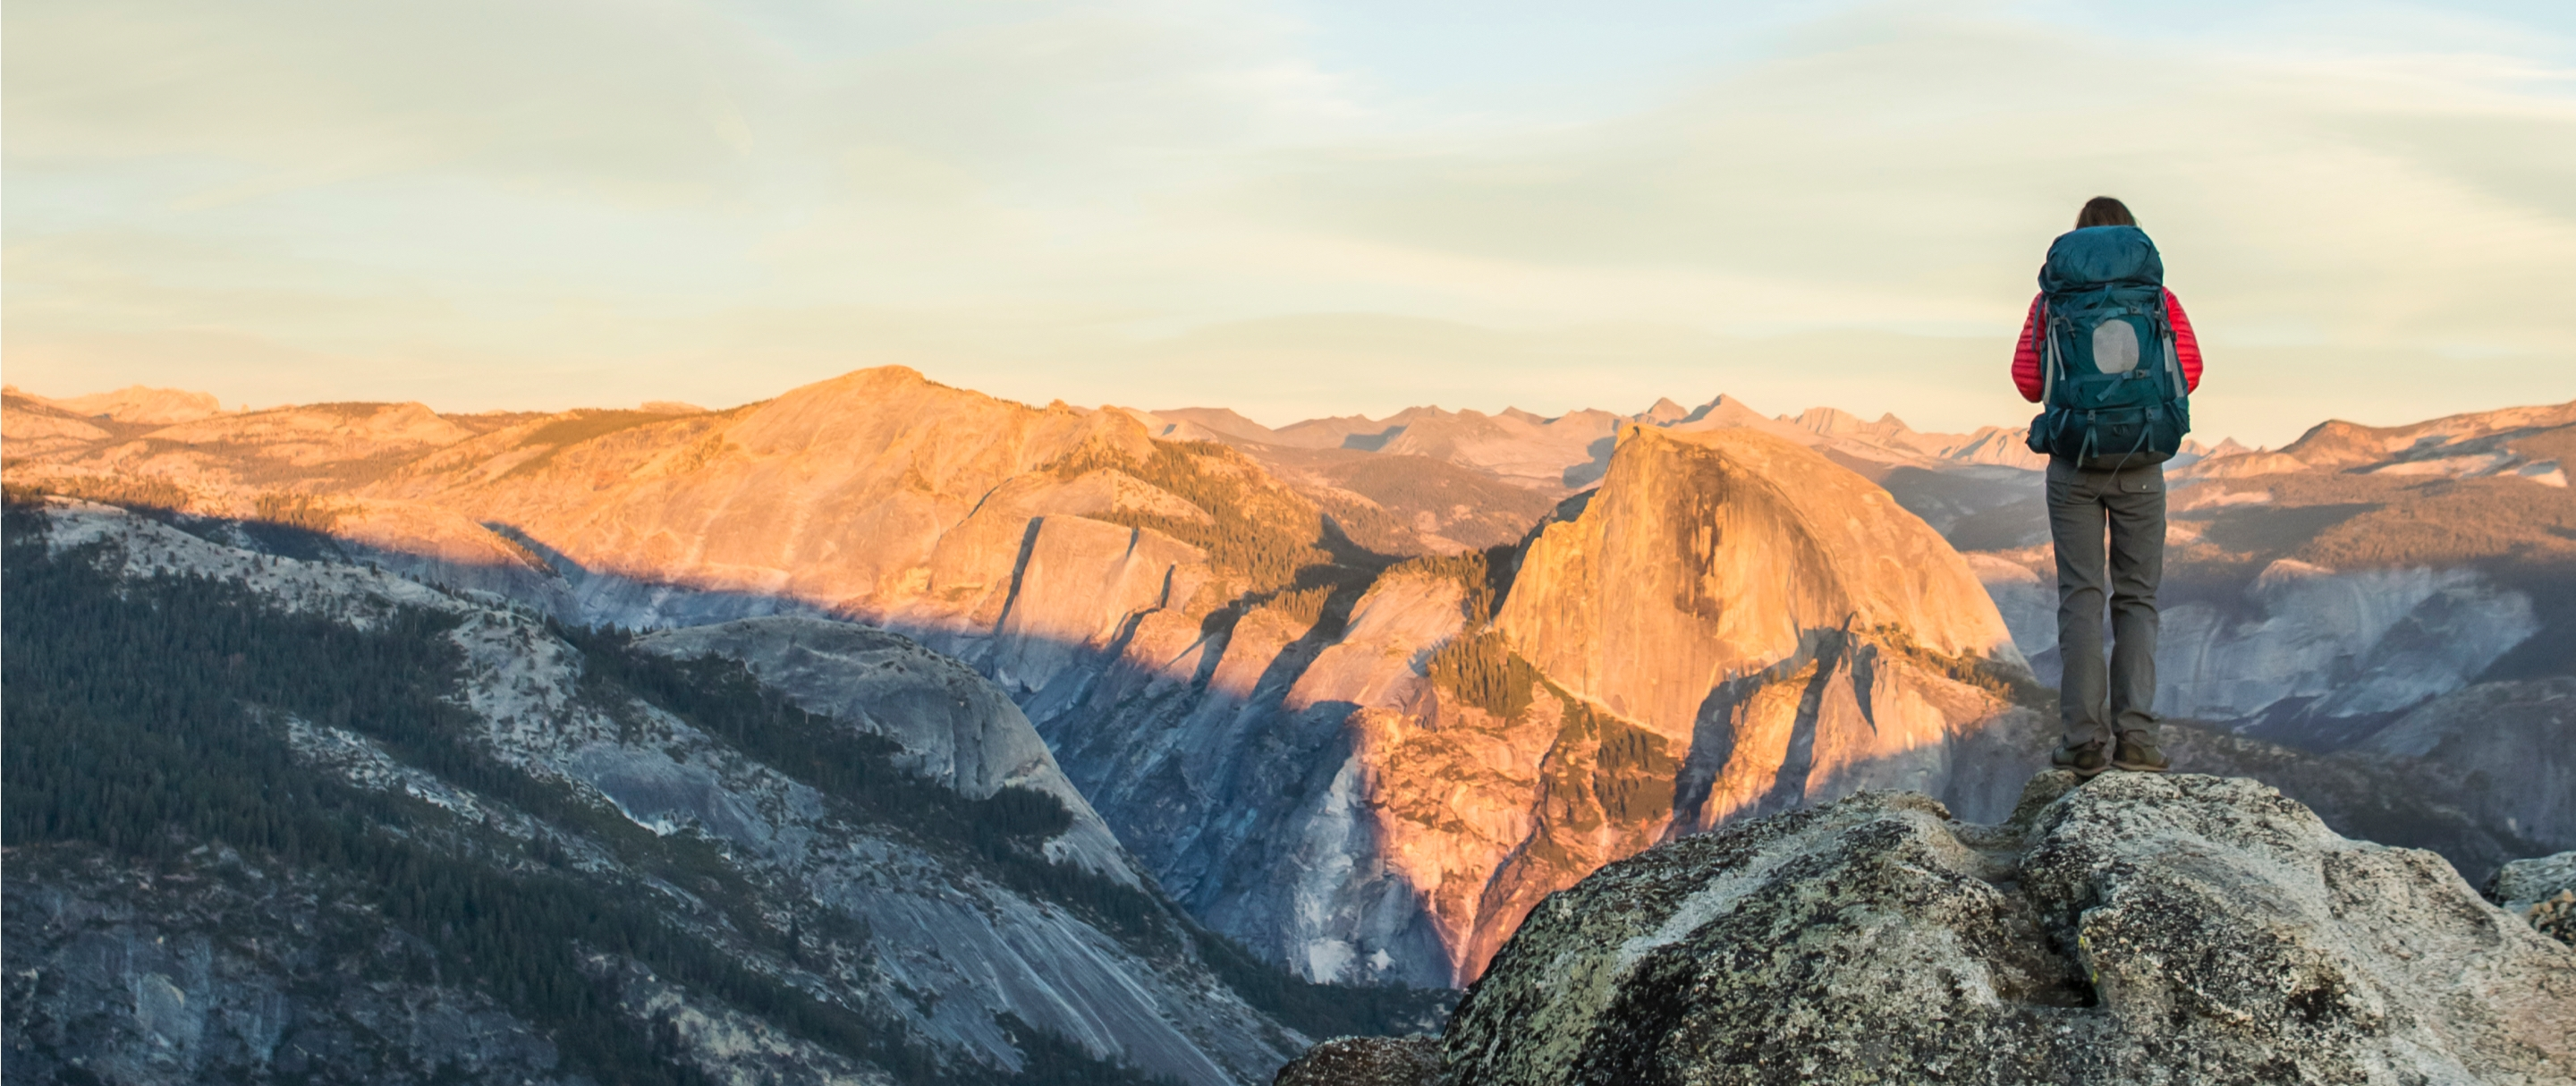 Marriott Bonvoy Launches Marketing Partnership with the National Park Foundation